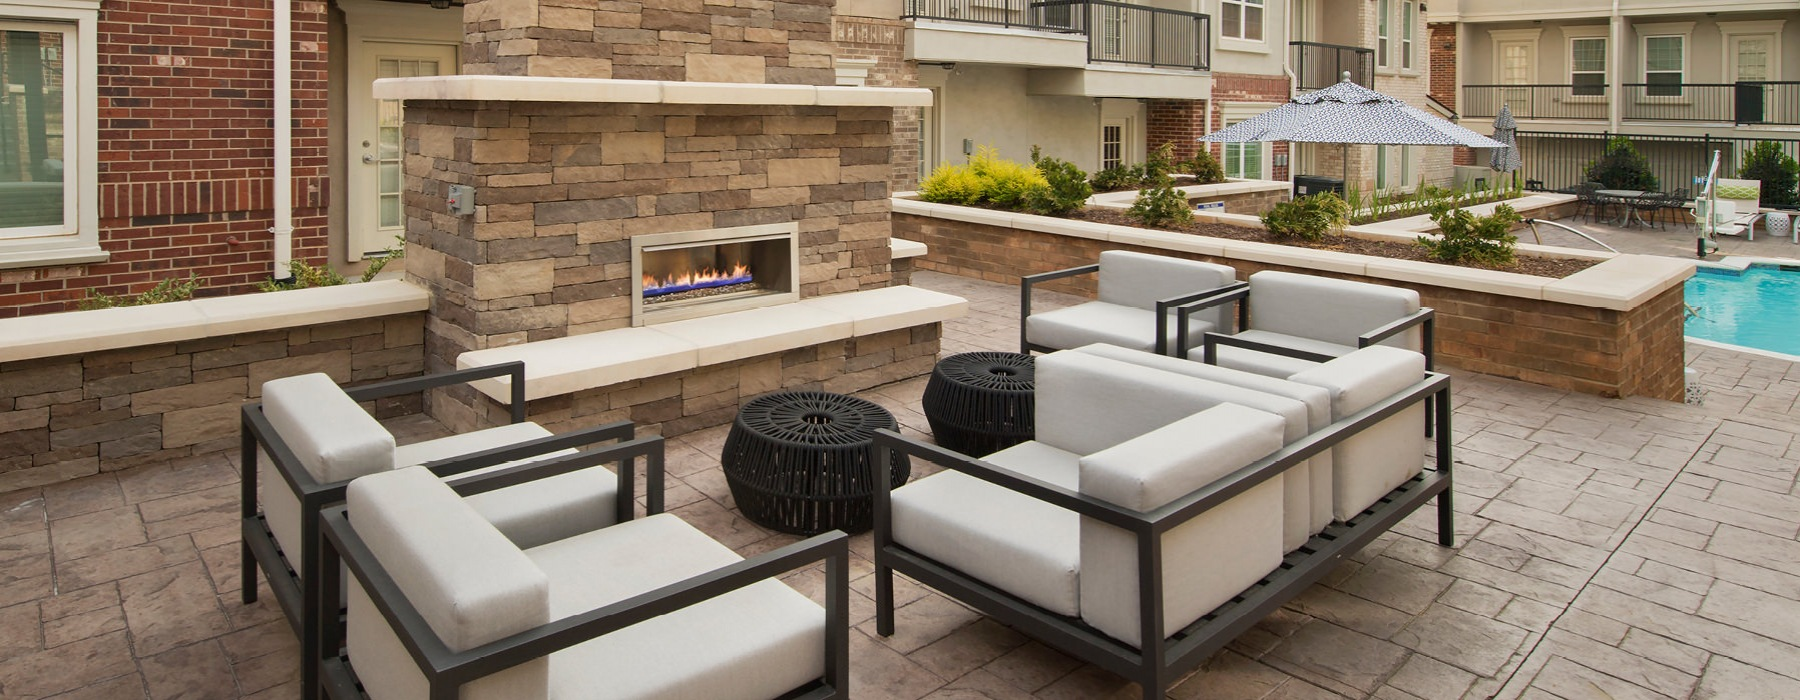 Outside living area with fireplace and four chair seating